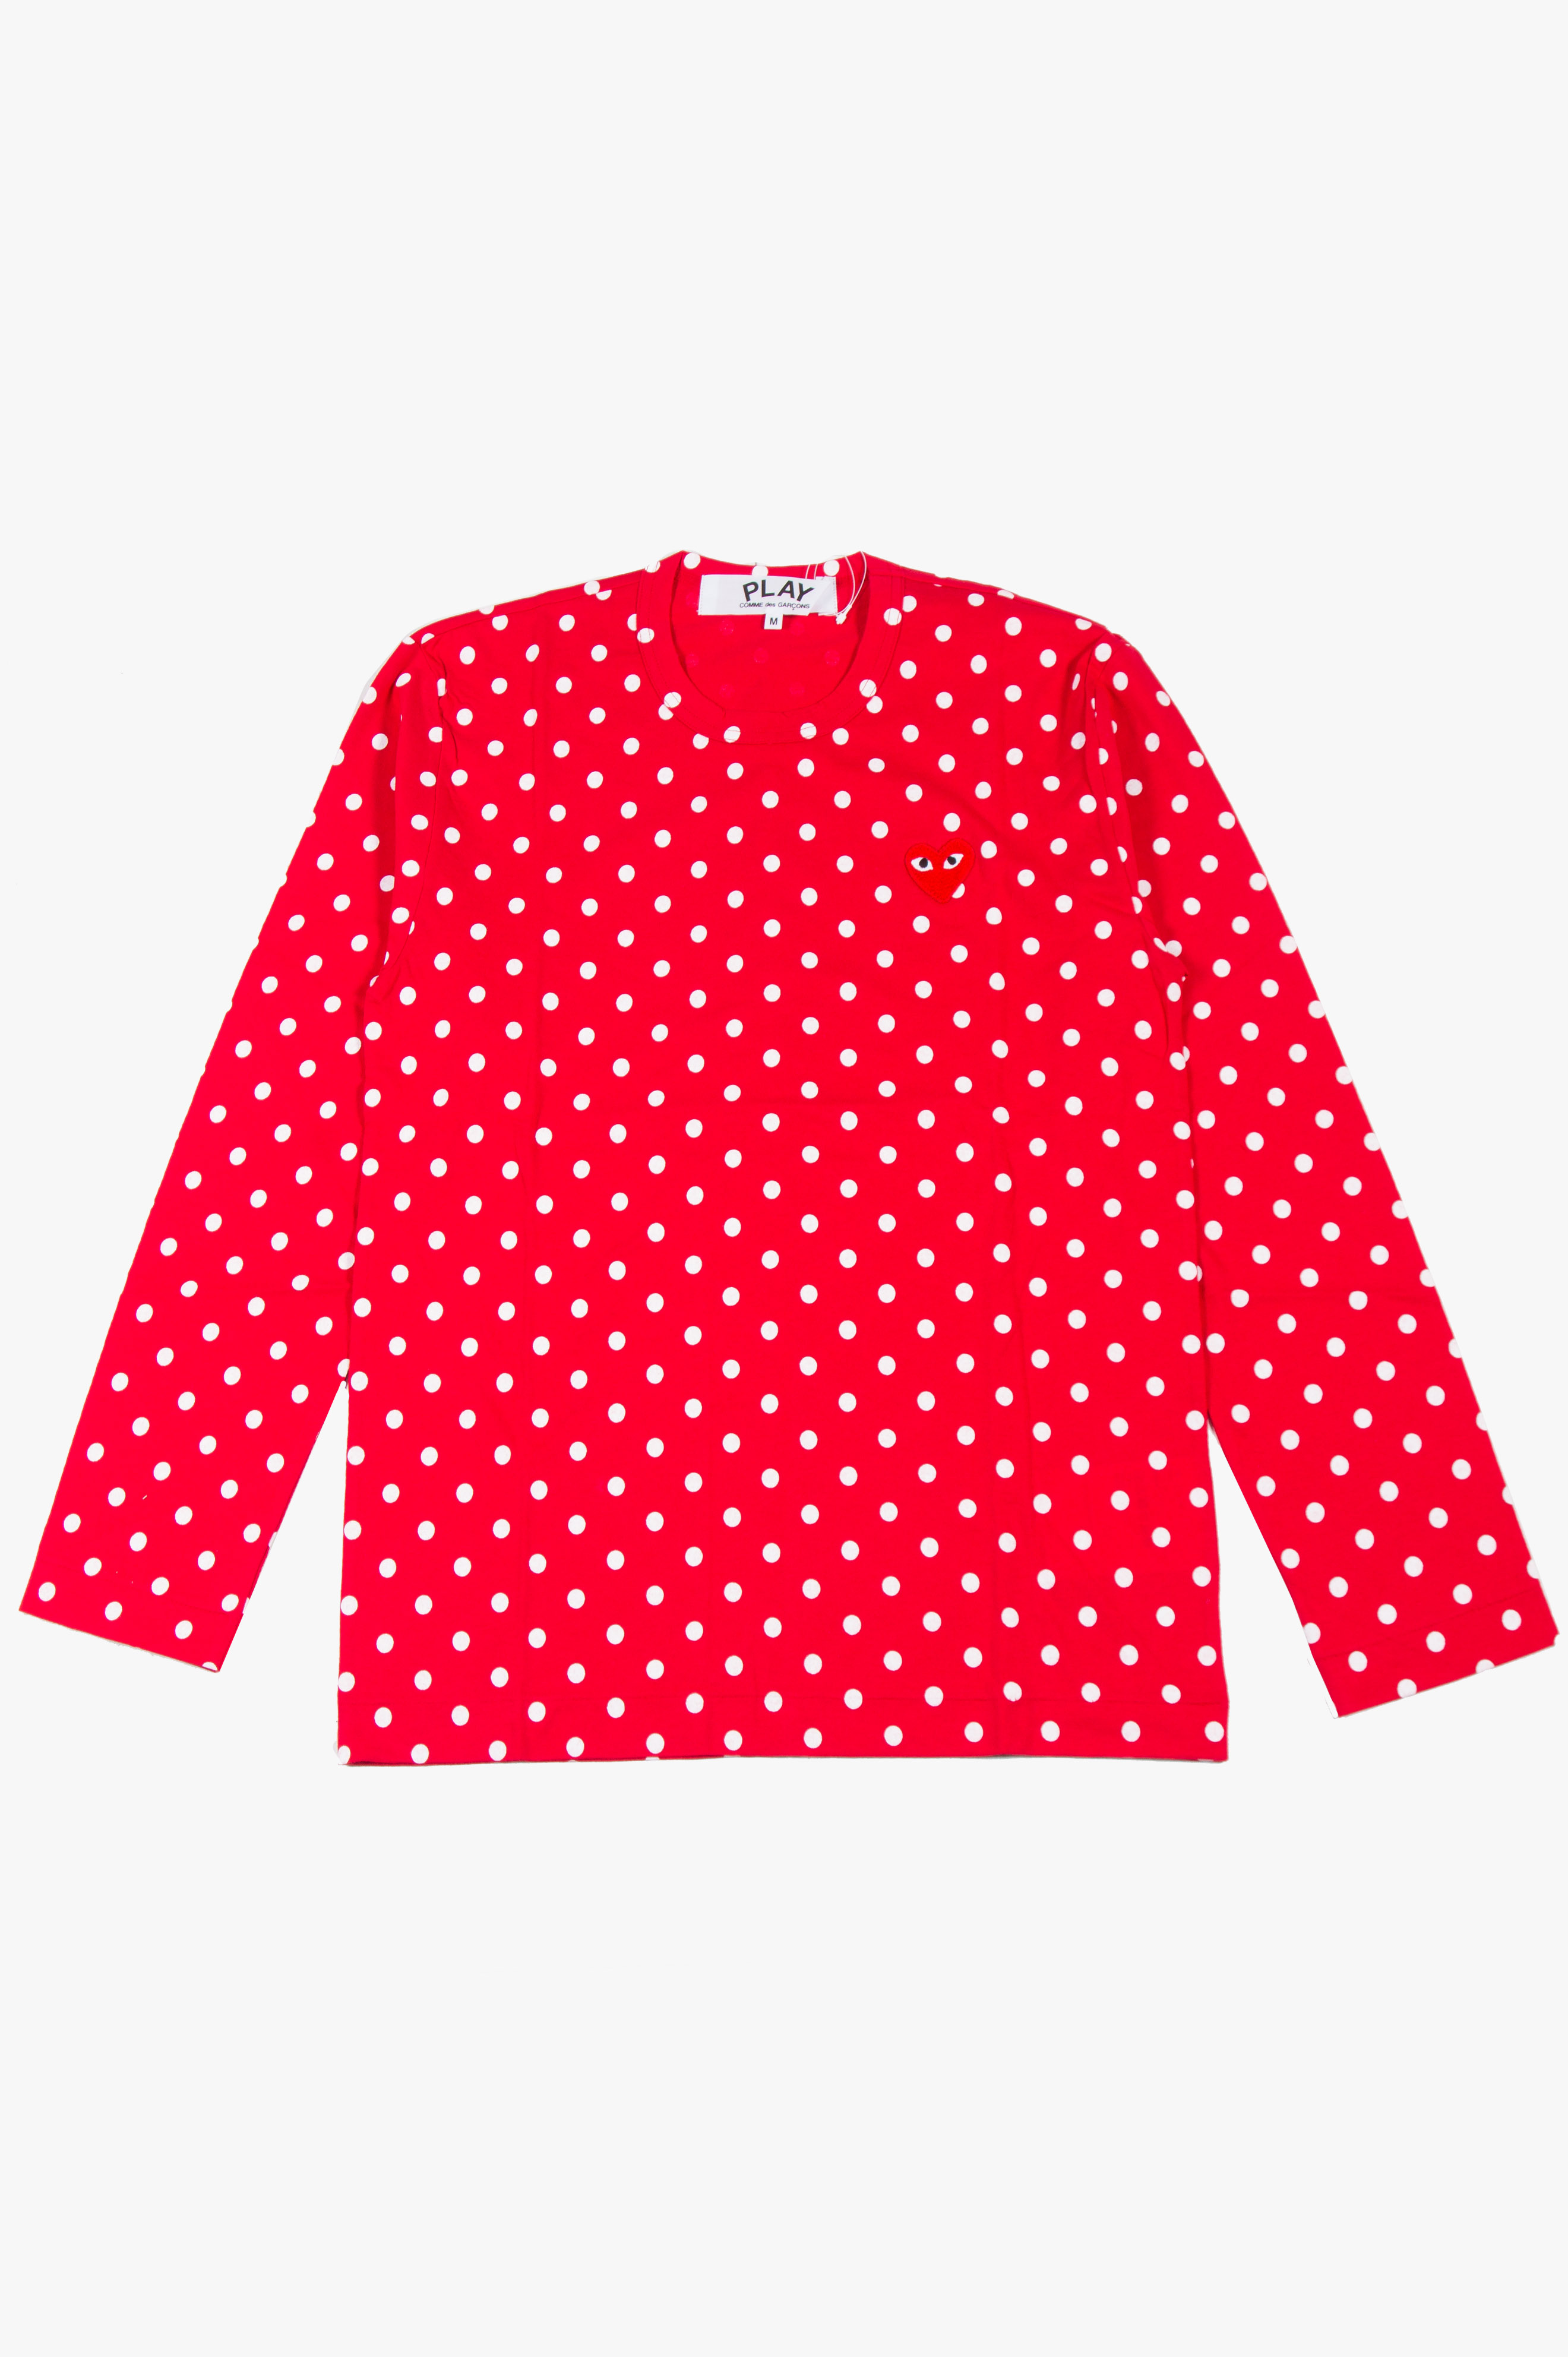 Polka Dot Long Sleeve Red